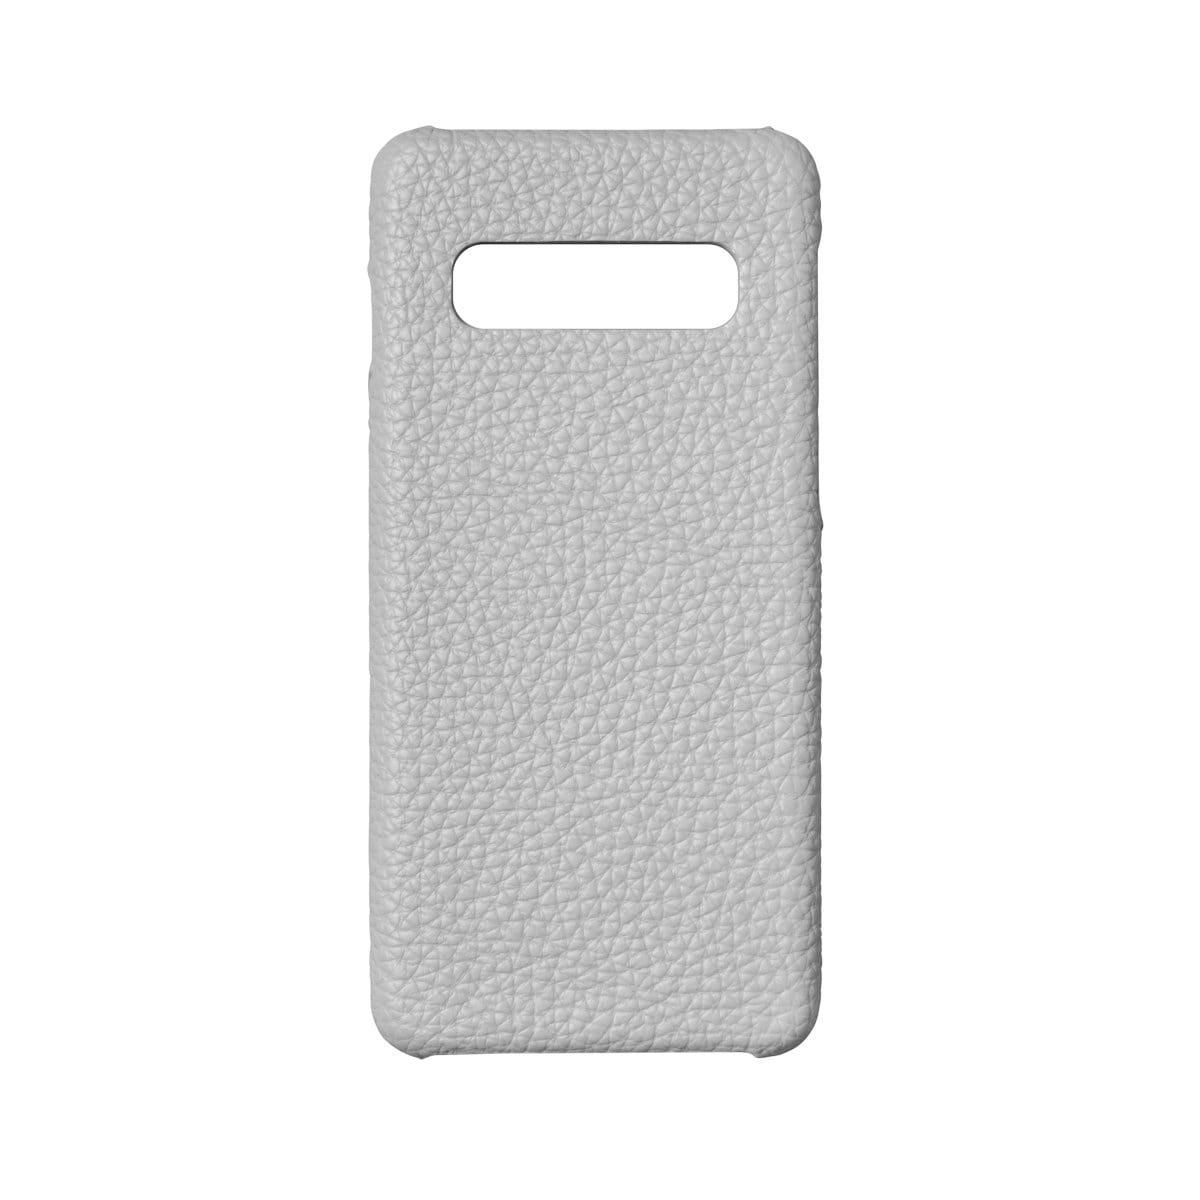 Parma Grey Phone Case (Samsung 10+)